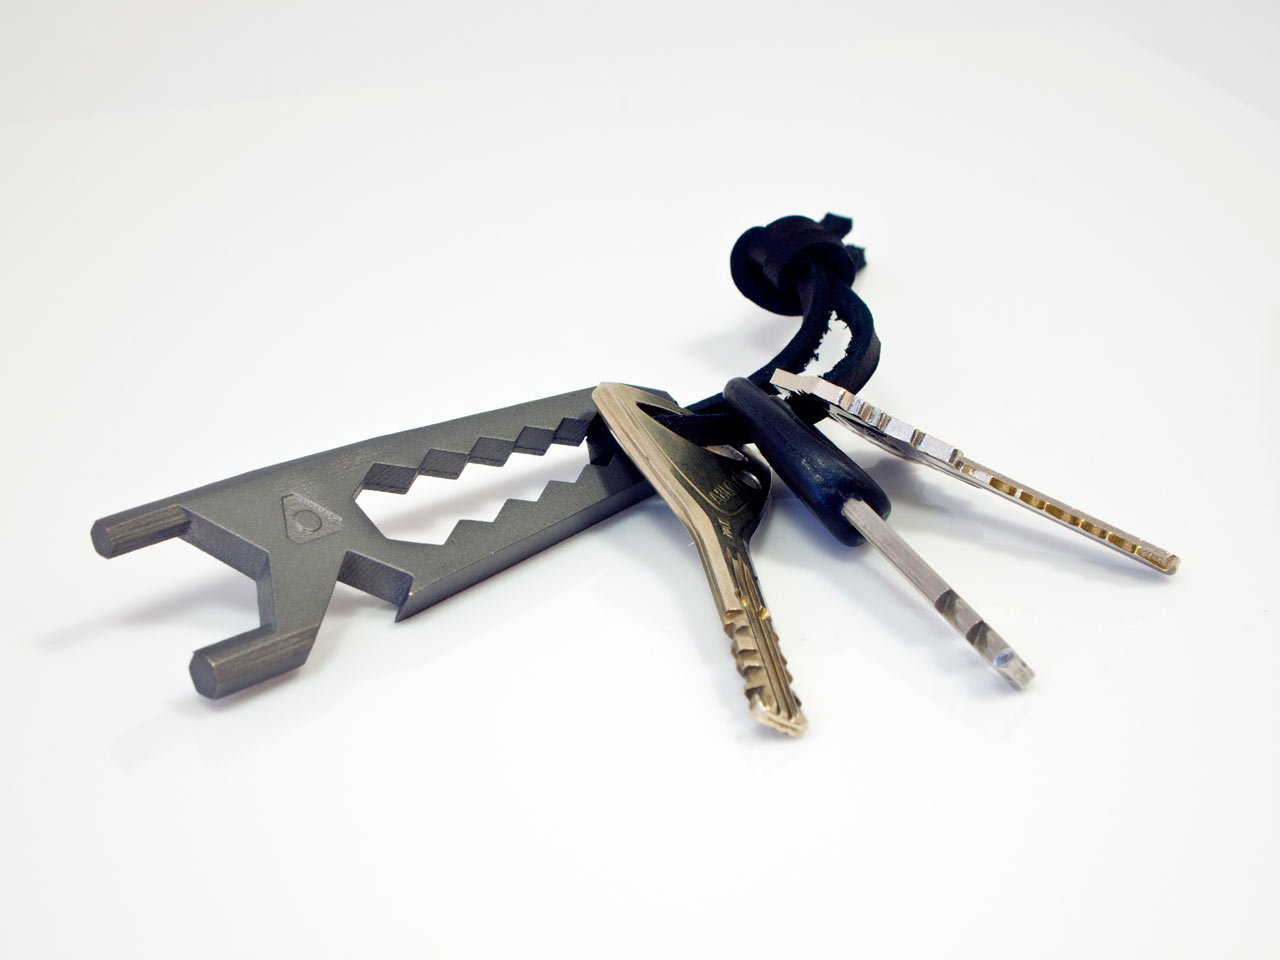 object-three-OB-1-multitool-Keychain